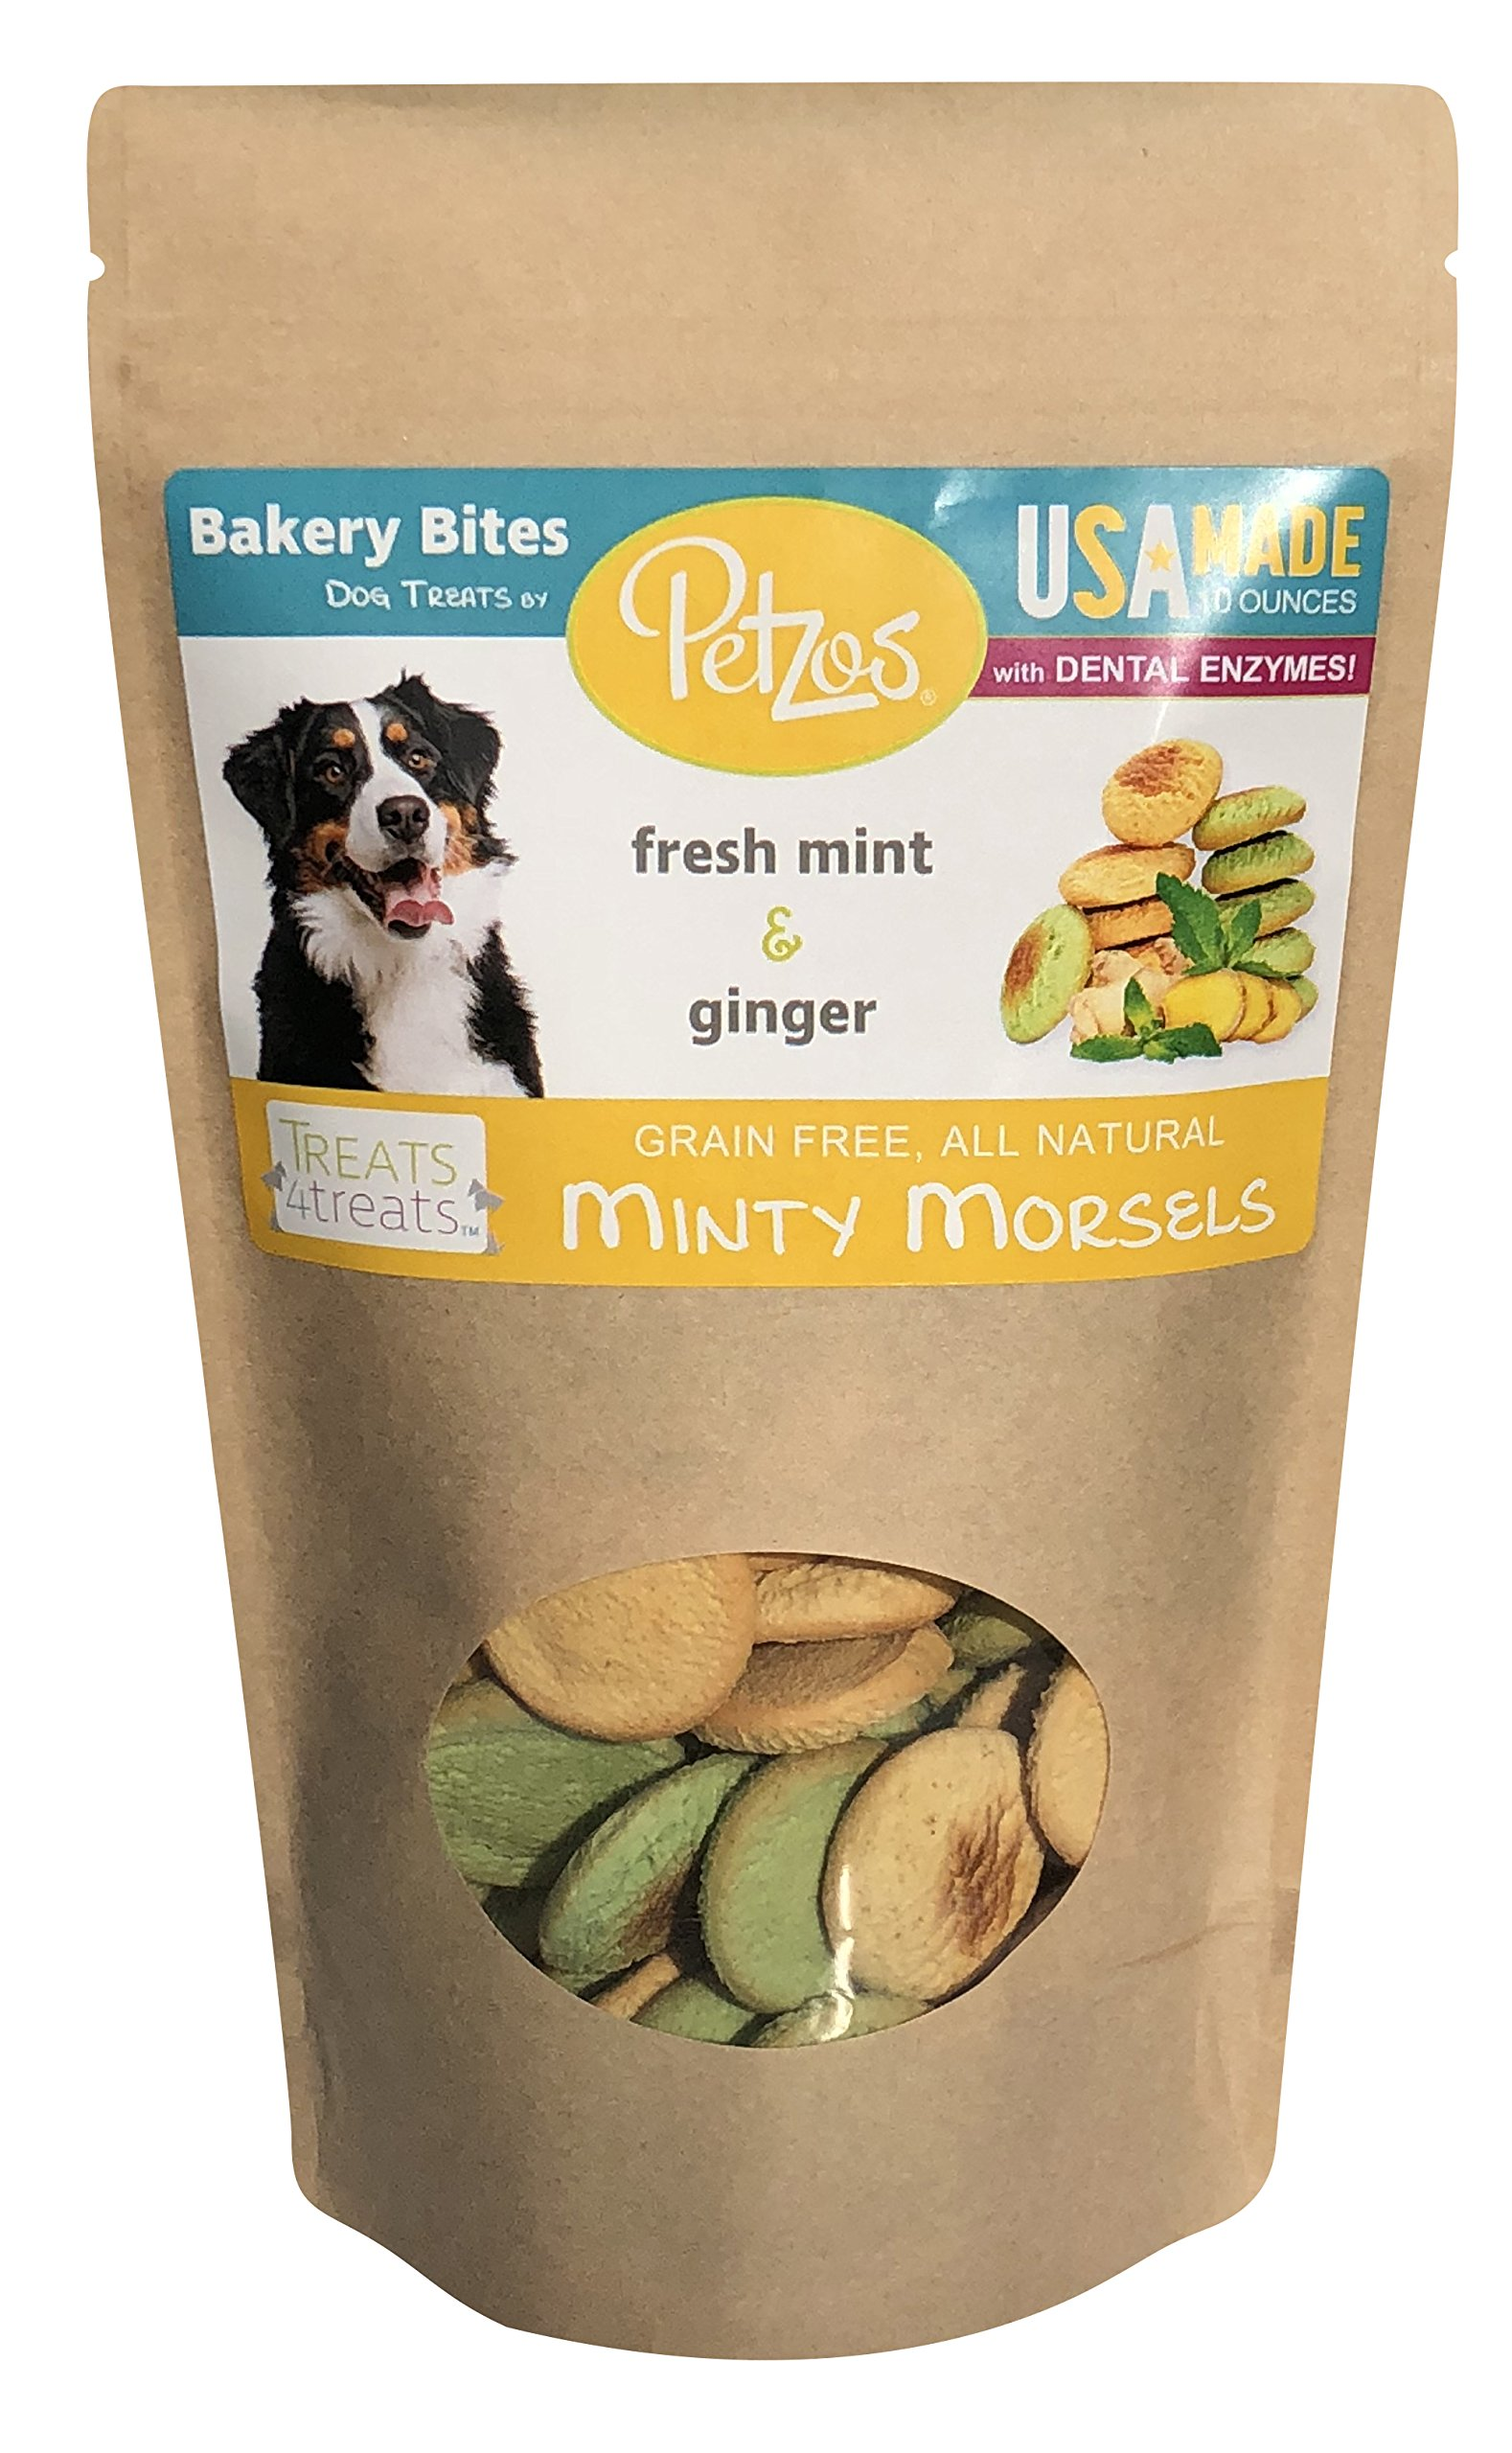 Petzos Grain Free Dog Treats | 2 Flavors - Mint & Ginger Dog Biscuits | Hypoallergenic | Gluten Free Dog Treats | Hand-Crafted by The Batch | 100% All Natural Gourmet | USA Made Dog Treats by Petzos